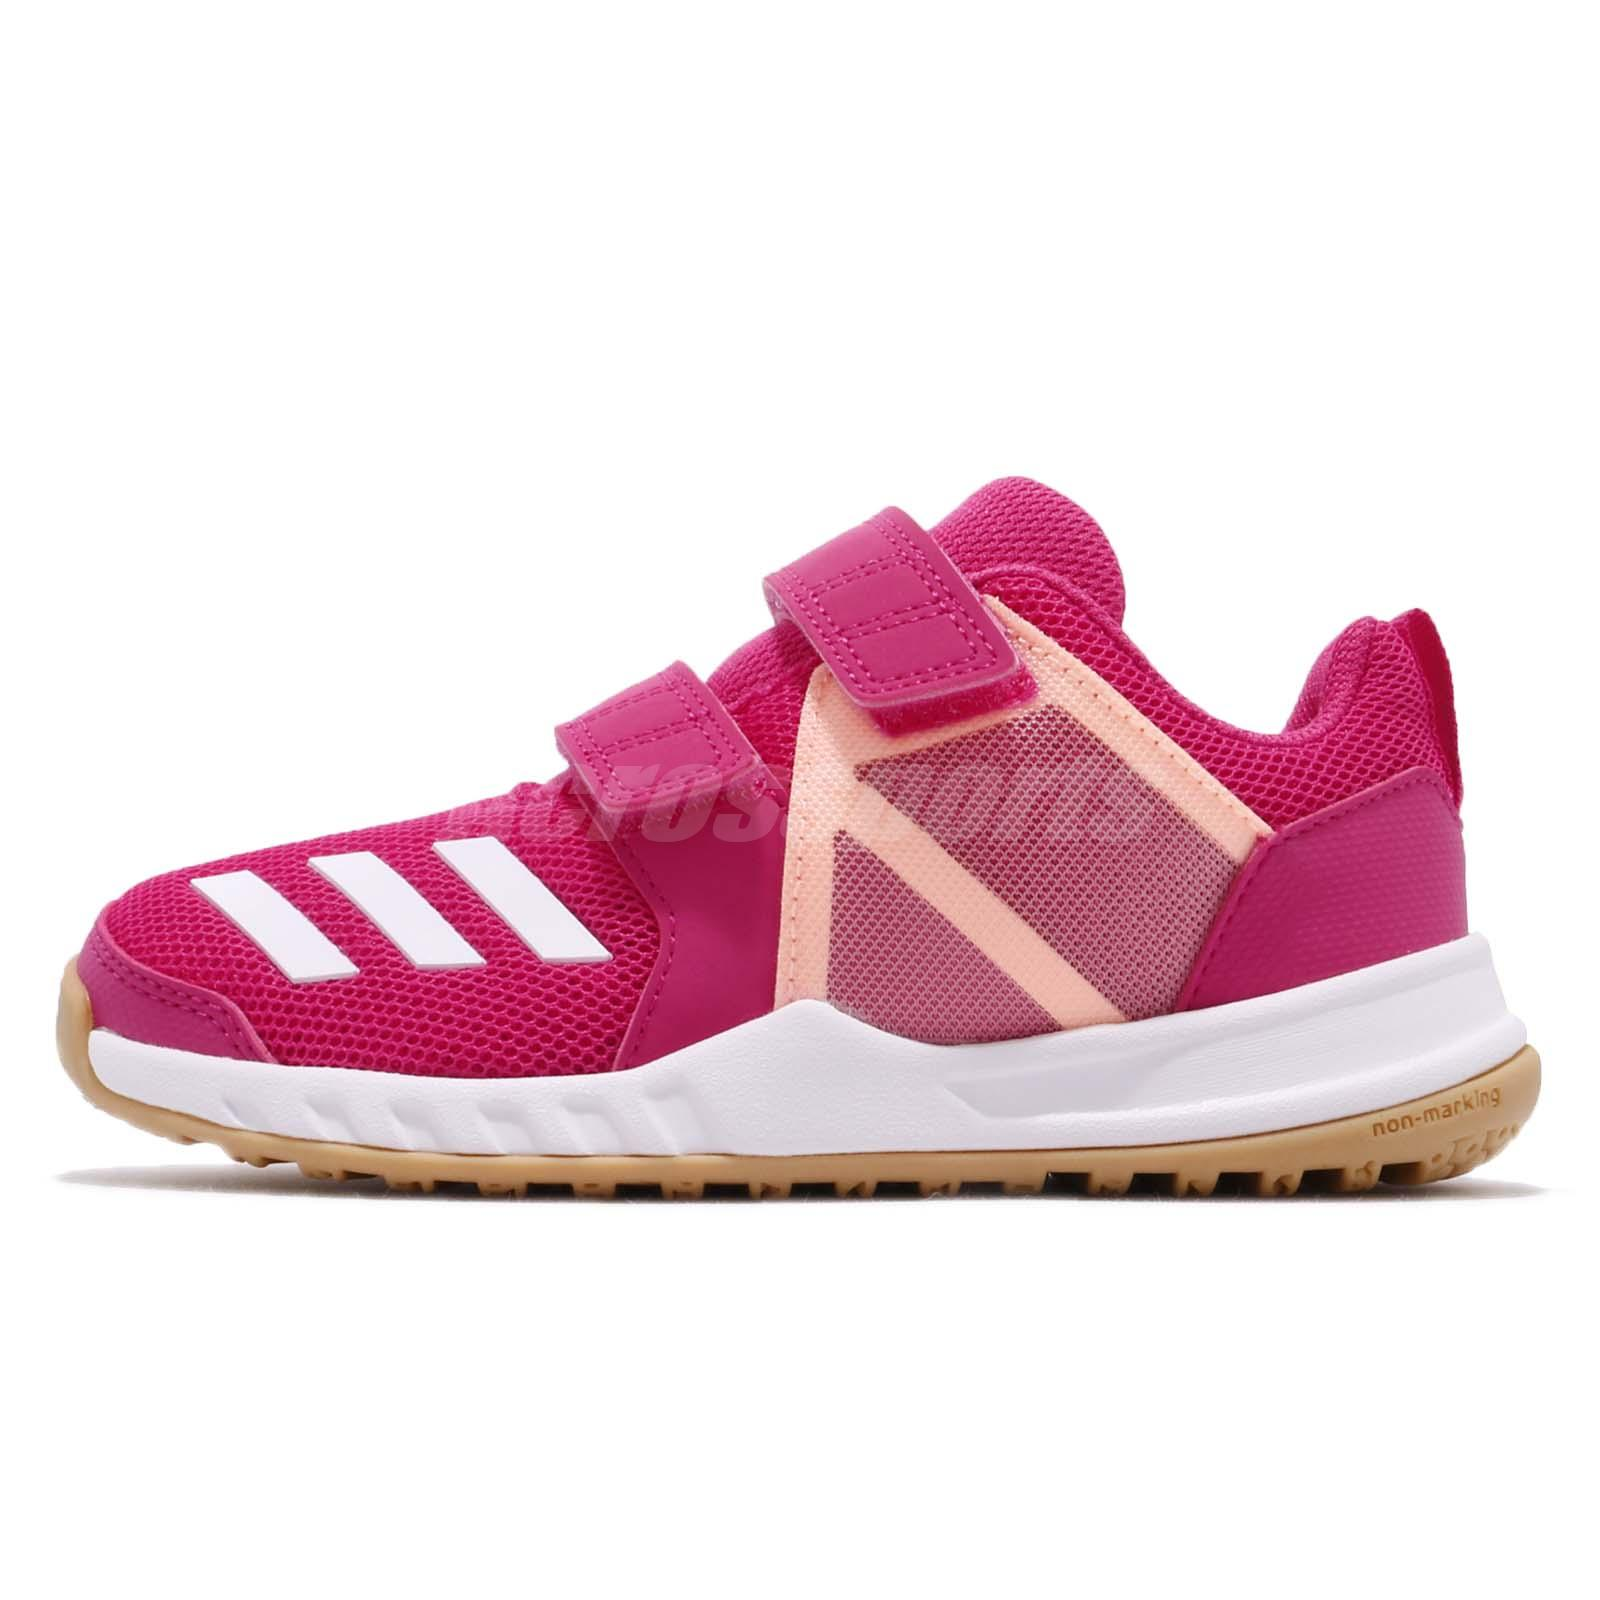 big sale 857eb 83650 adidas FortaGym CF K Real Magenta Pink Gum Kid Junior Preschool Shoes AH2561